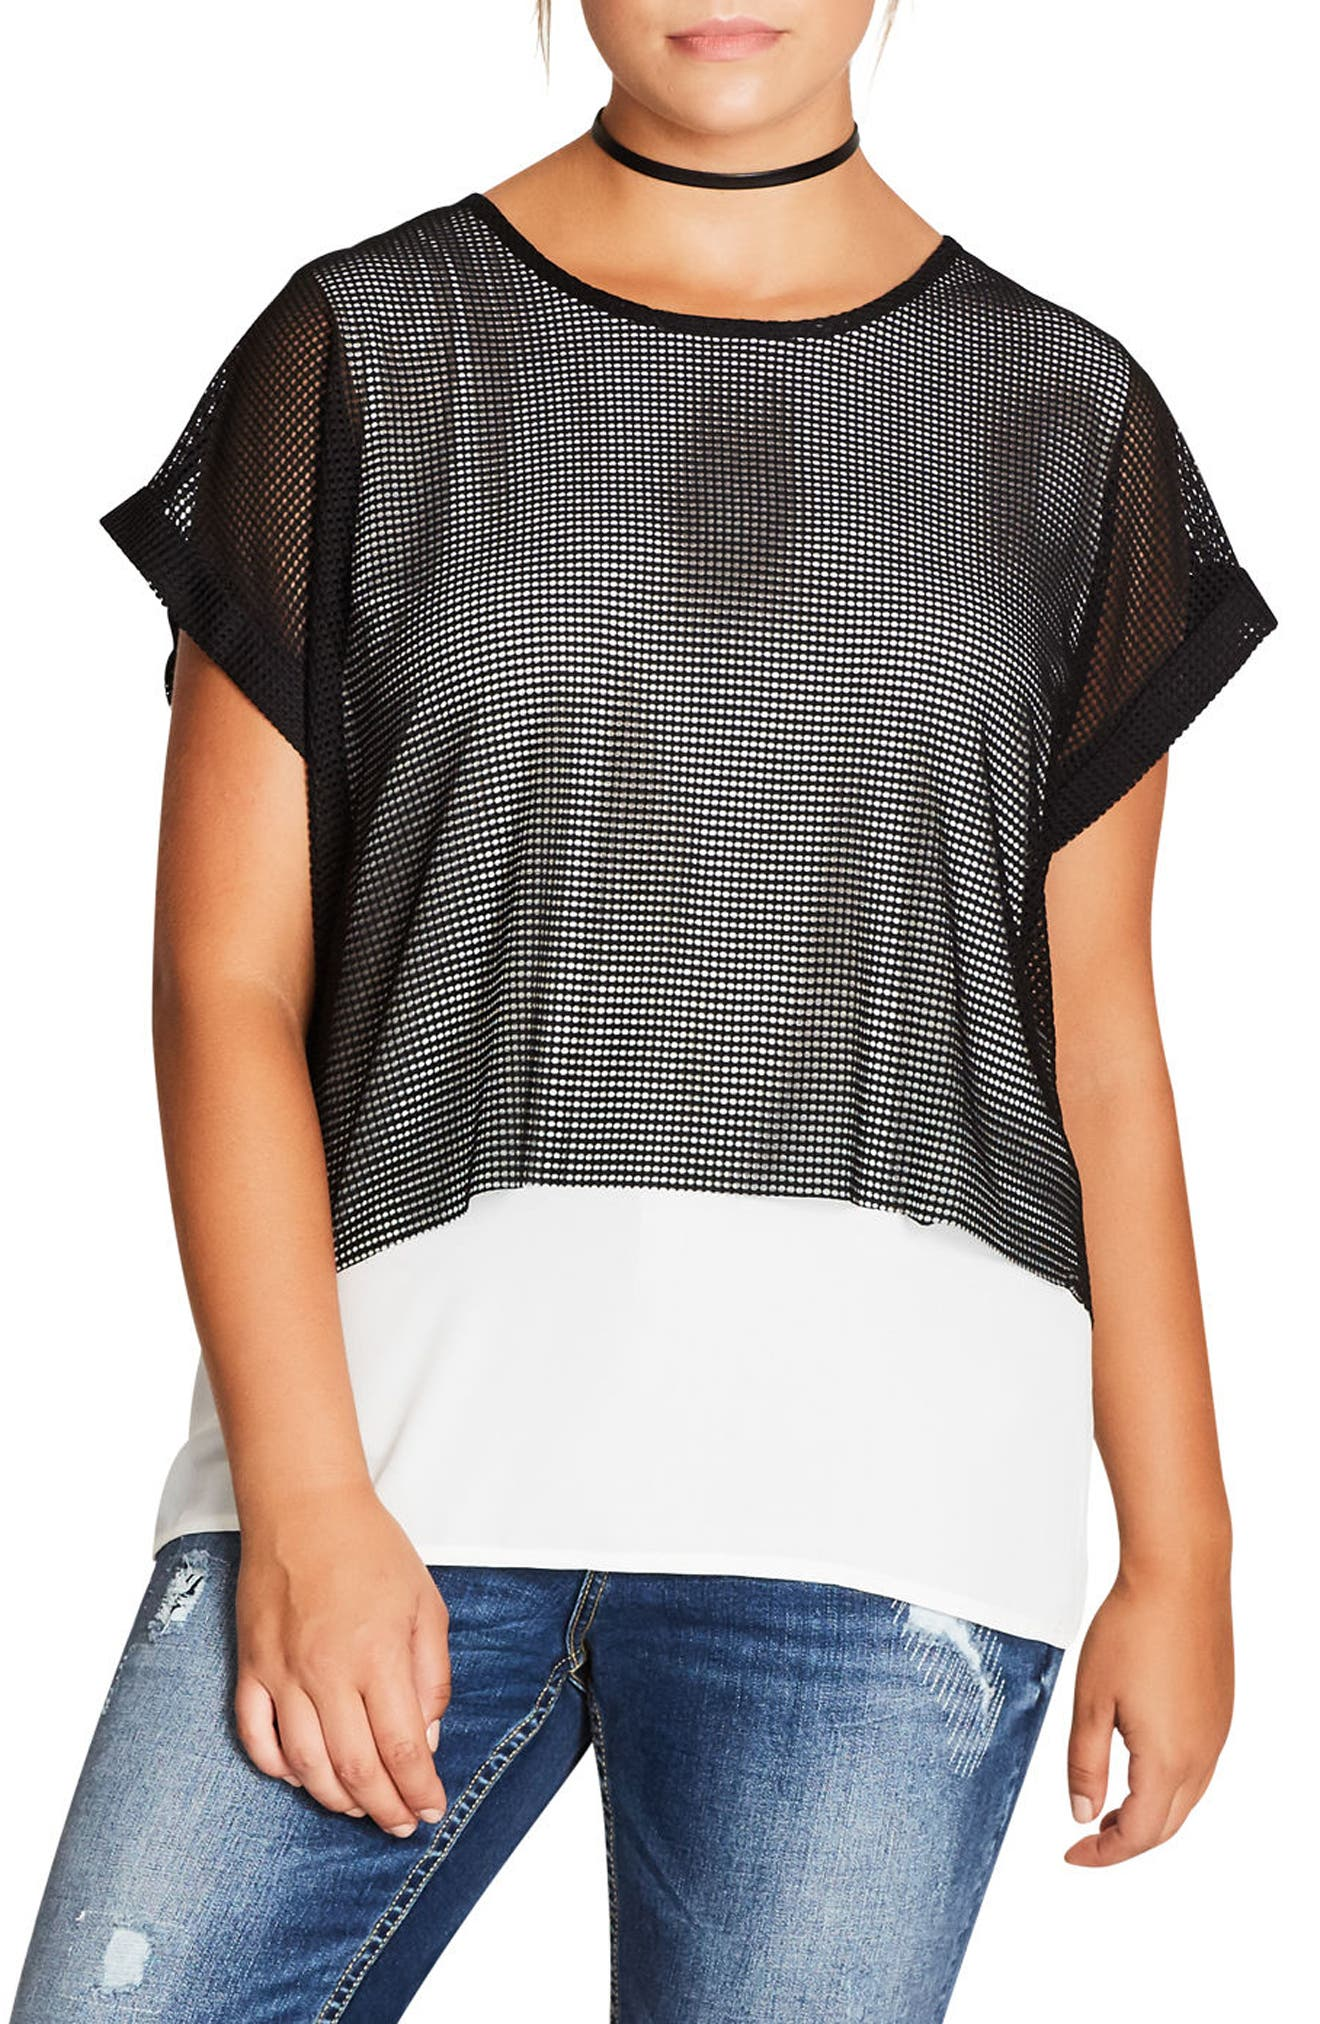 Alternate Image 1 Selected - City Chic Mesh Contrast Top (Plus Size)